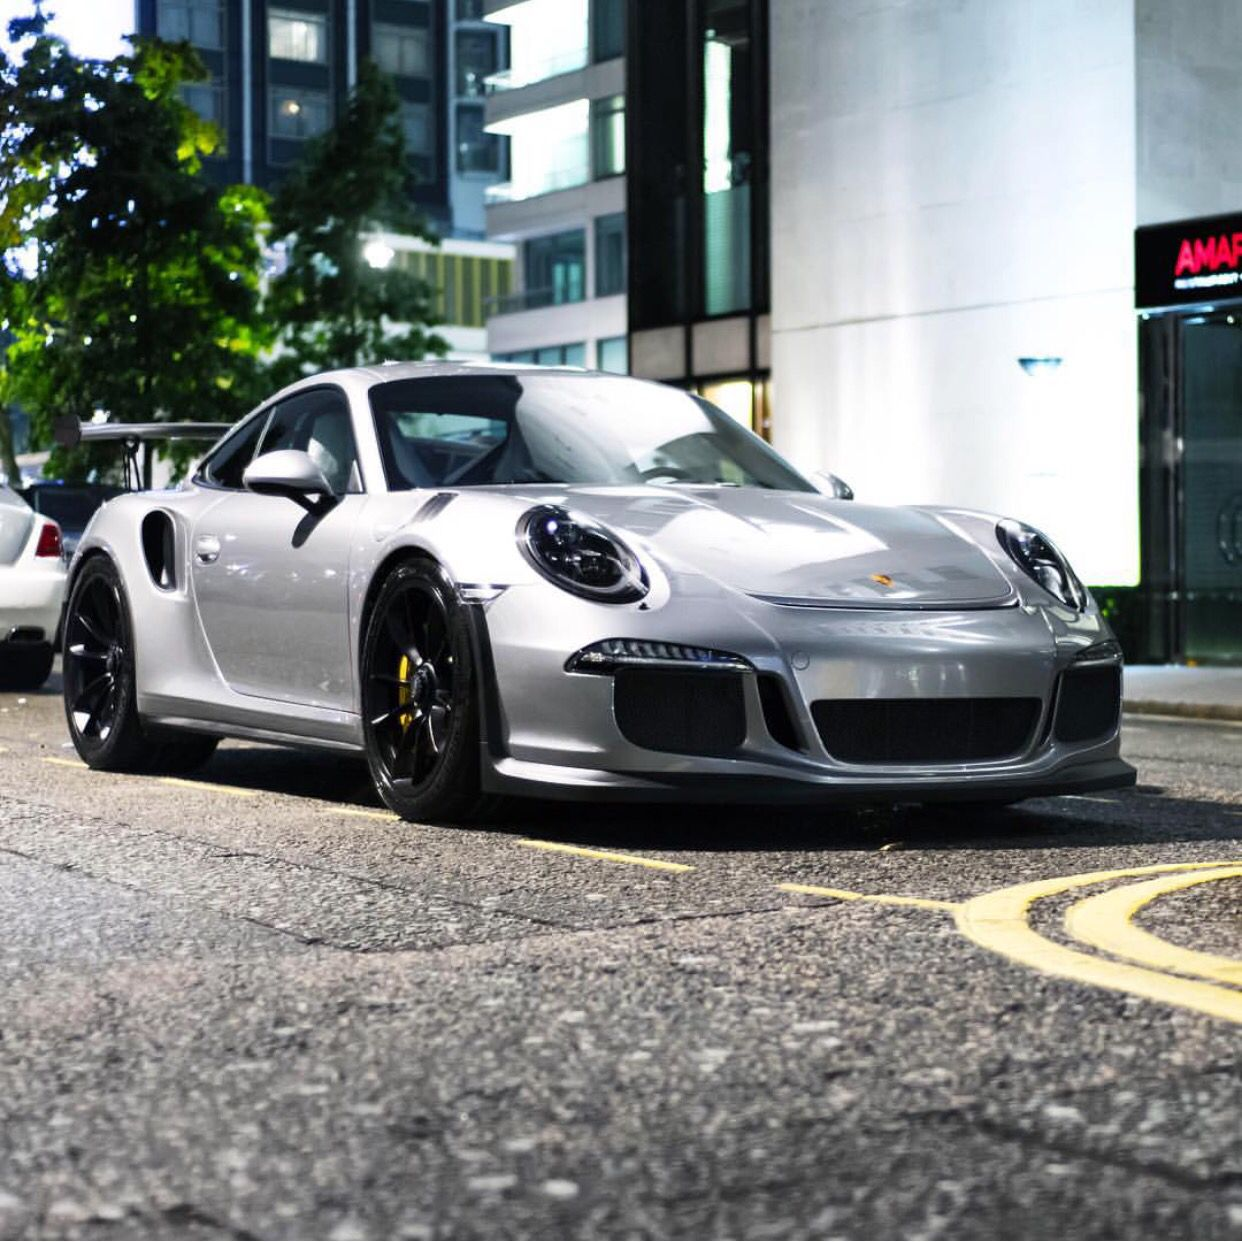 Best 30 Luxury Porsche Sport Cars Collections: Porsche 991 GT3 RS Painted In GT Silver Metallic Photo